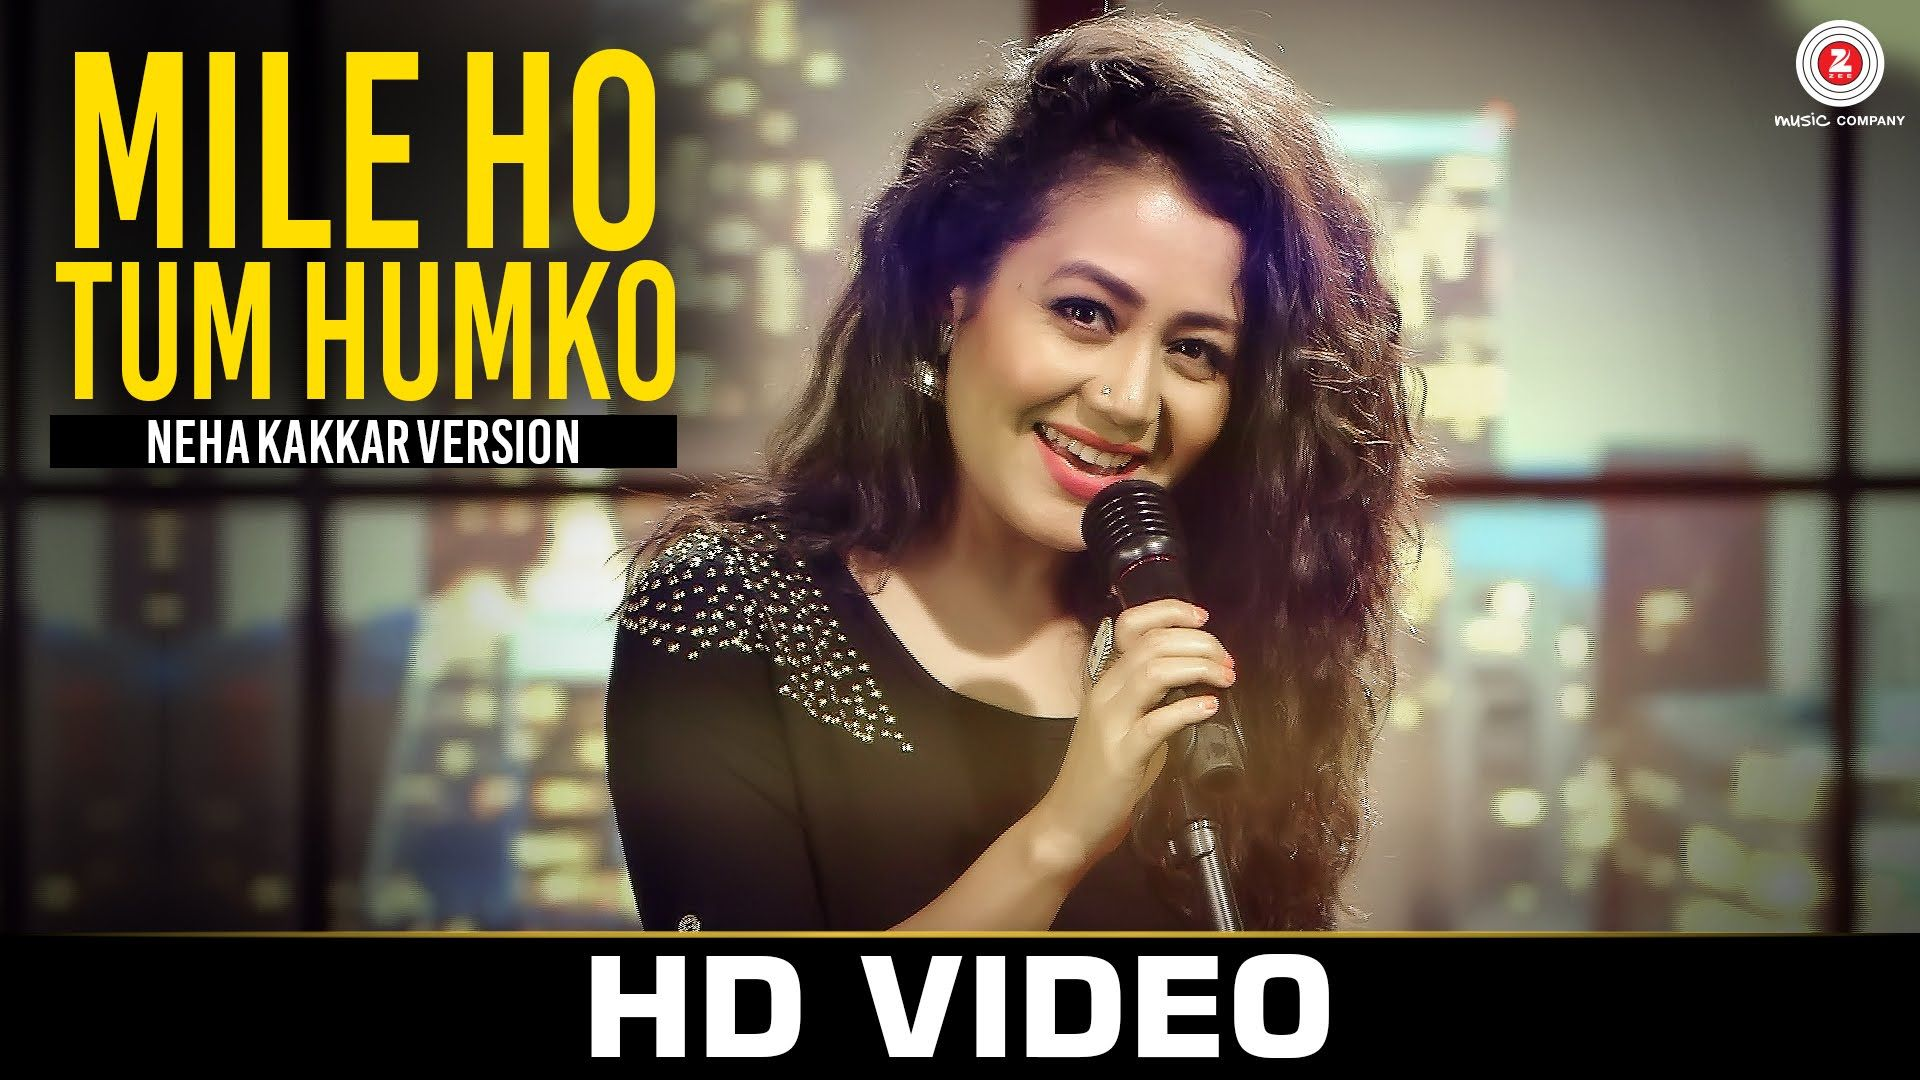 Mile Ho Tum Neha Kakkar S Version Tony Kakkar Hollywood Songs Love Songs Hindi Love Songs Playlist